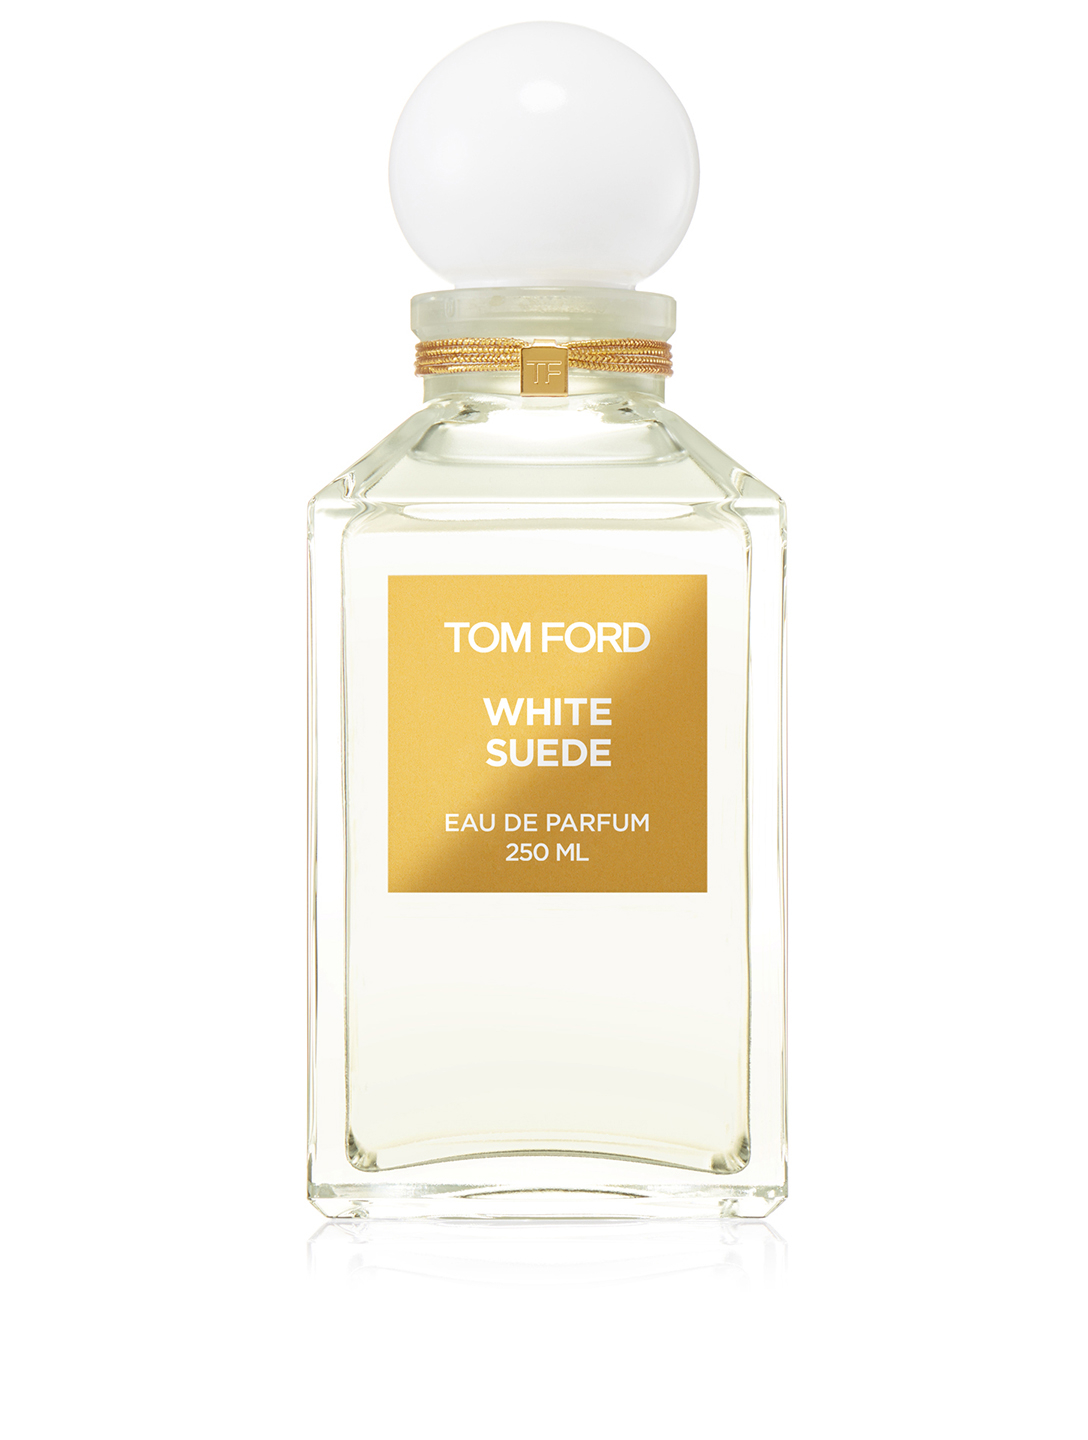 TOM FORD White Suede Eau De Parfum Beauty